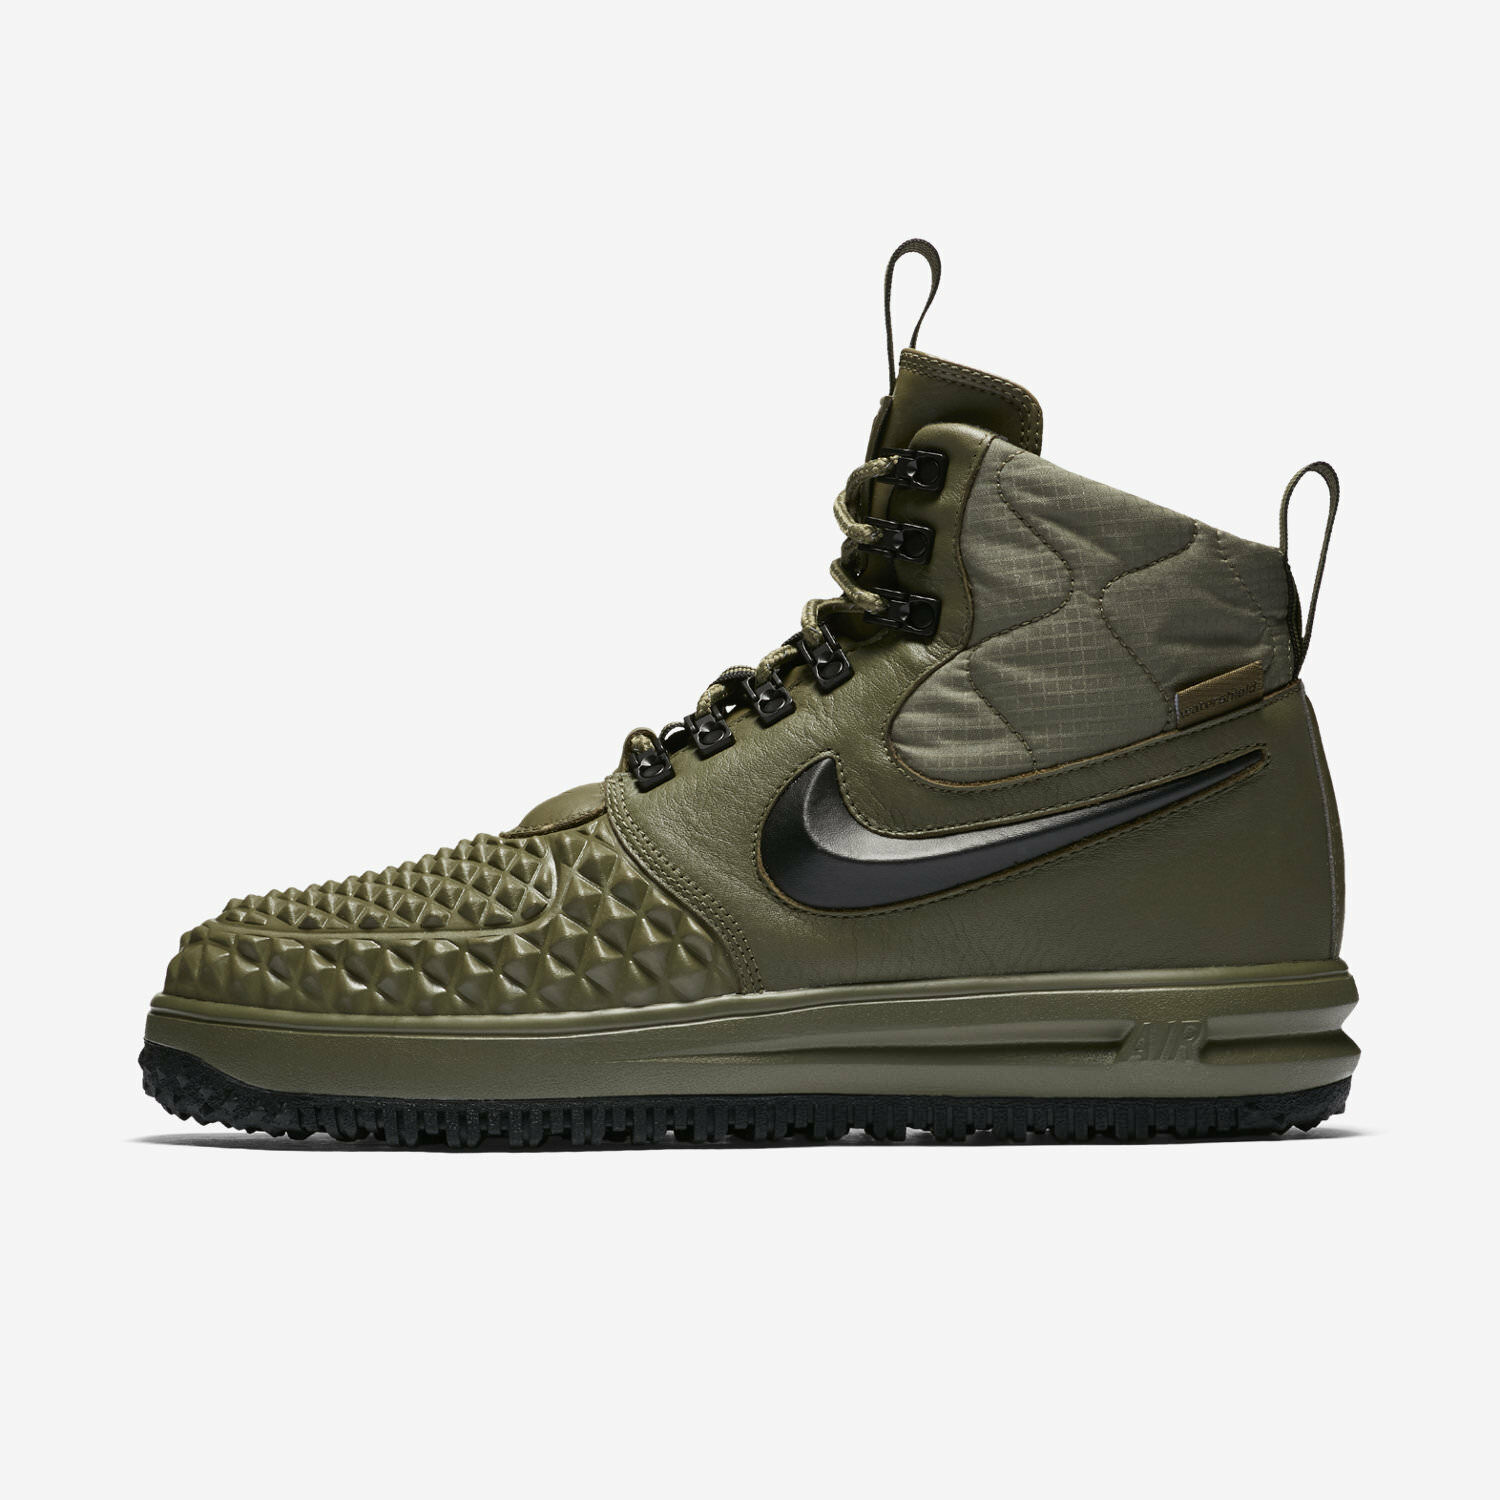 Men's Nike Lunar Force 1 Duckboot '17 - Medium Olive/Black (916682 202) Size 8